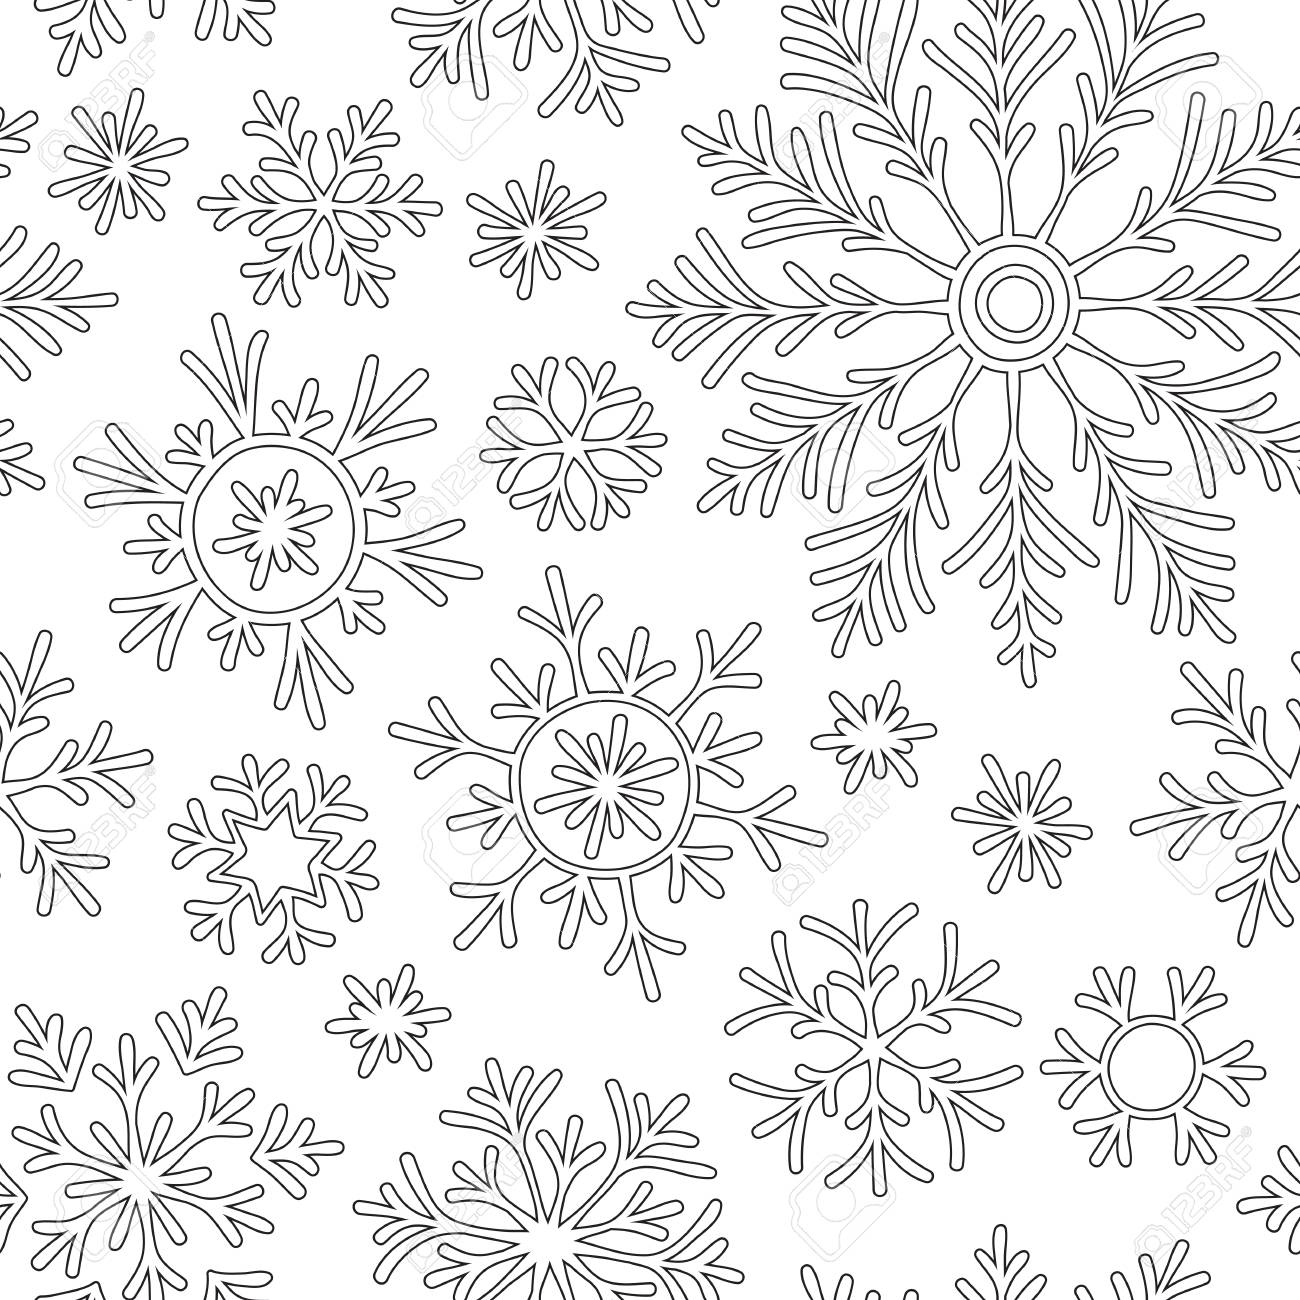 Anti-stress Coloring Book Page For Adult With Doodle Snowflakes ...